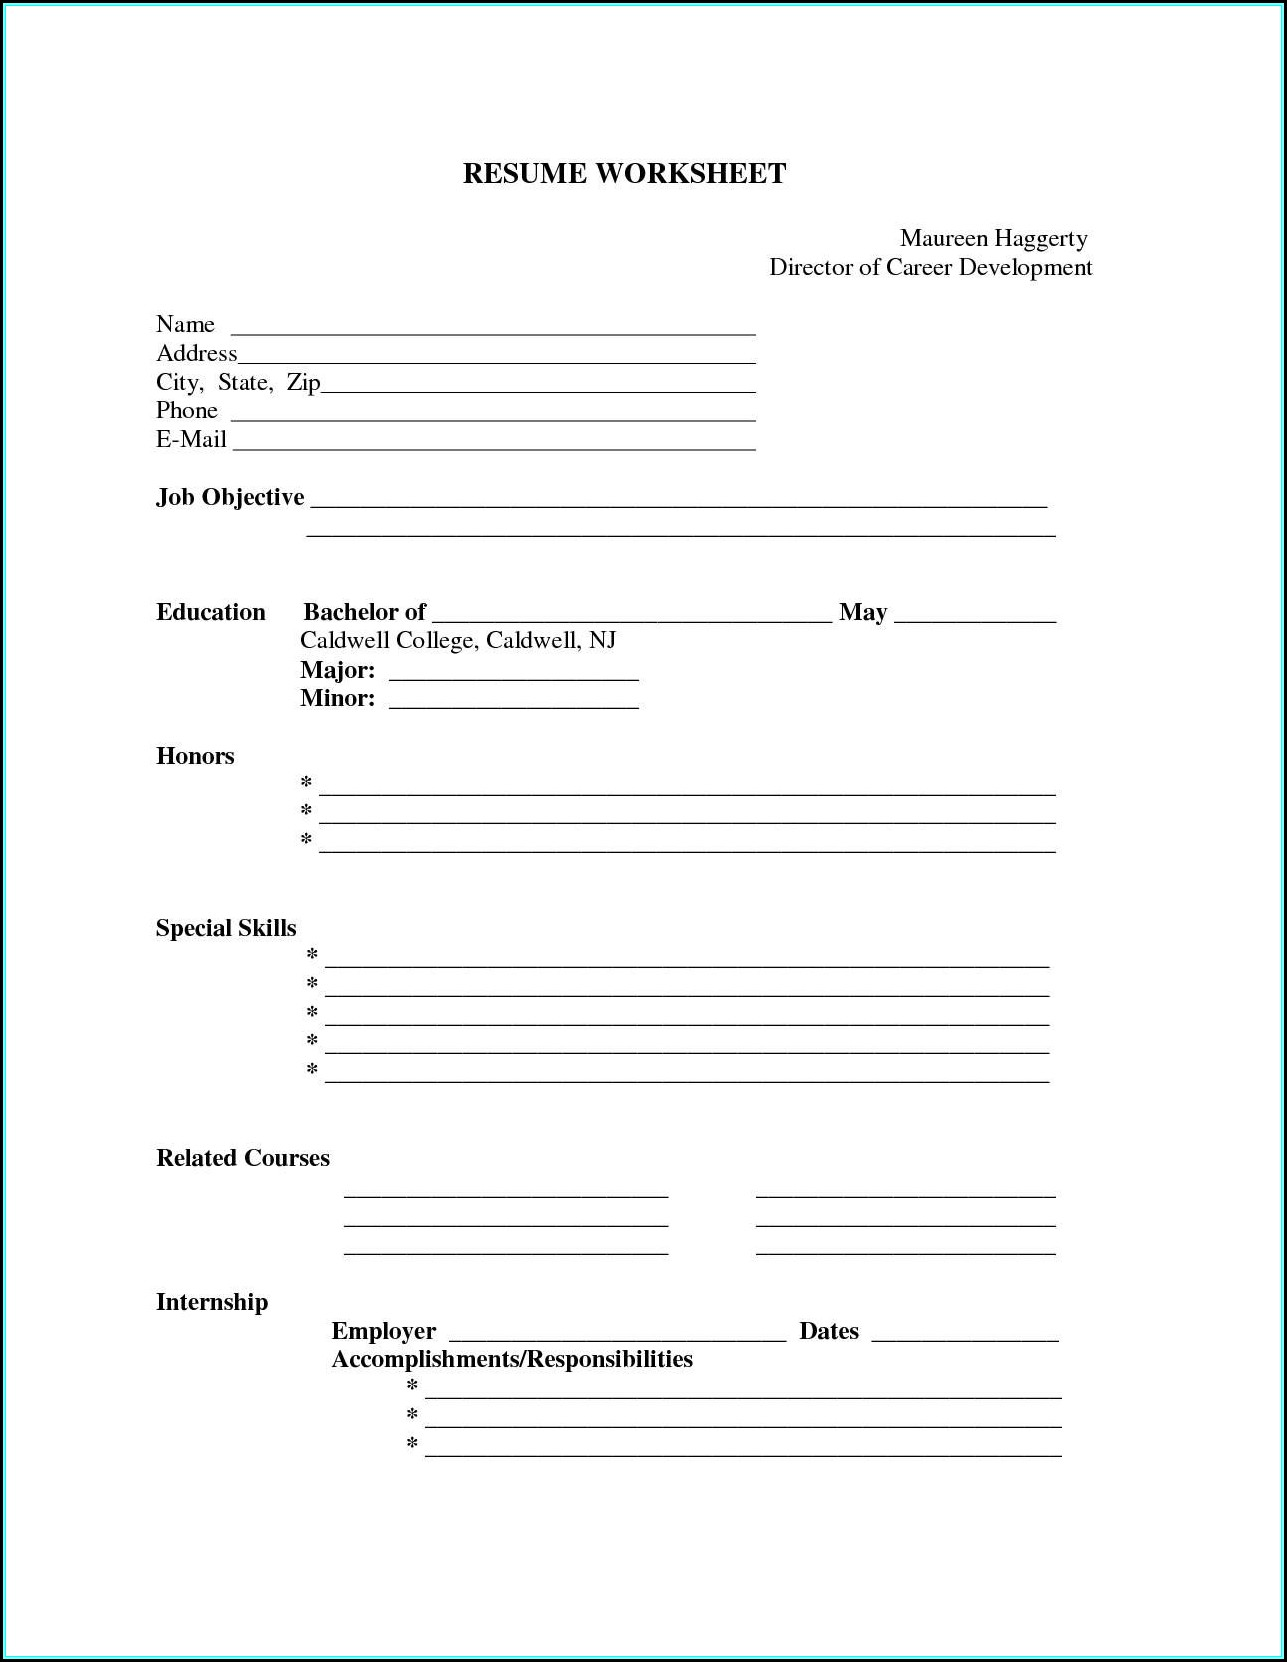 Resume Templates Printable Free